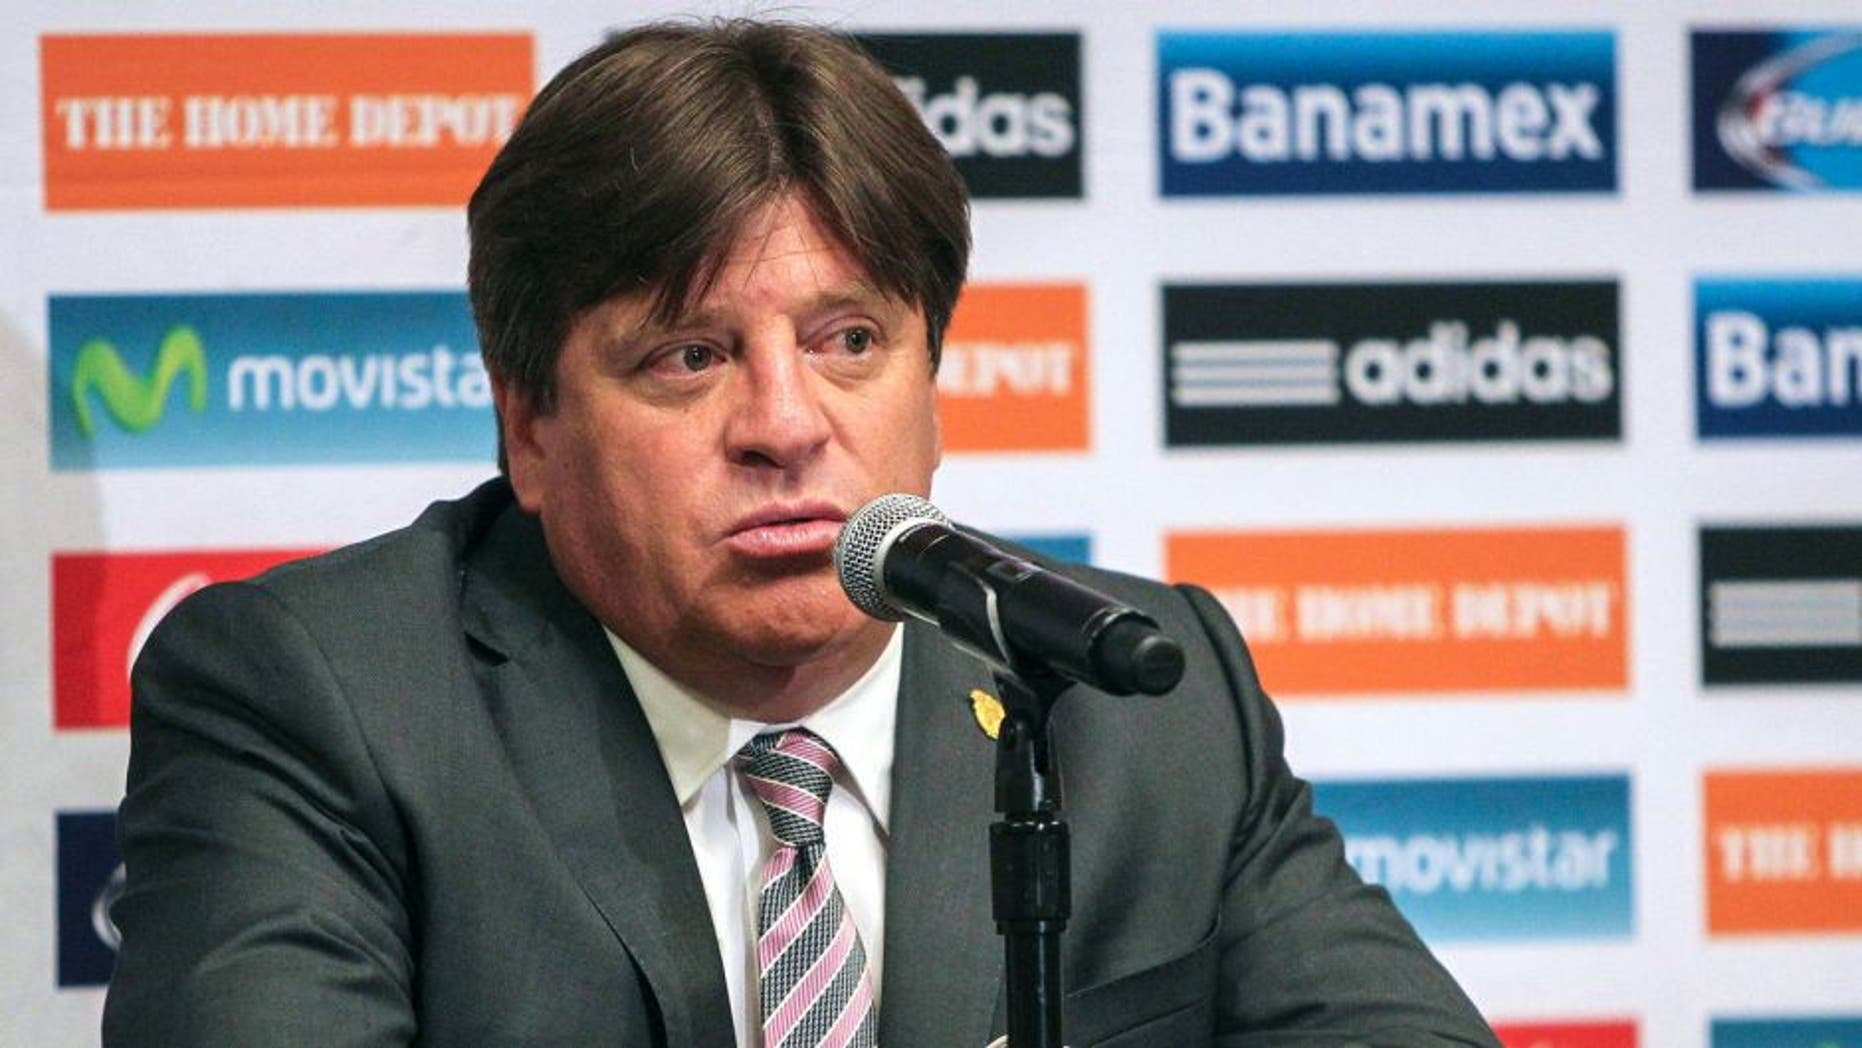 Jul 1, 2015; Houston, TX, USA; Mexico head coach Miguel Herrera talks with media after a match against Honduras at NRG Stadium. Mexico and Honduras played to a 0-0 tie. Mandatory Credit: Troy Taormina-USA TODAY Sports